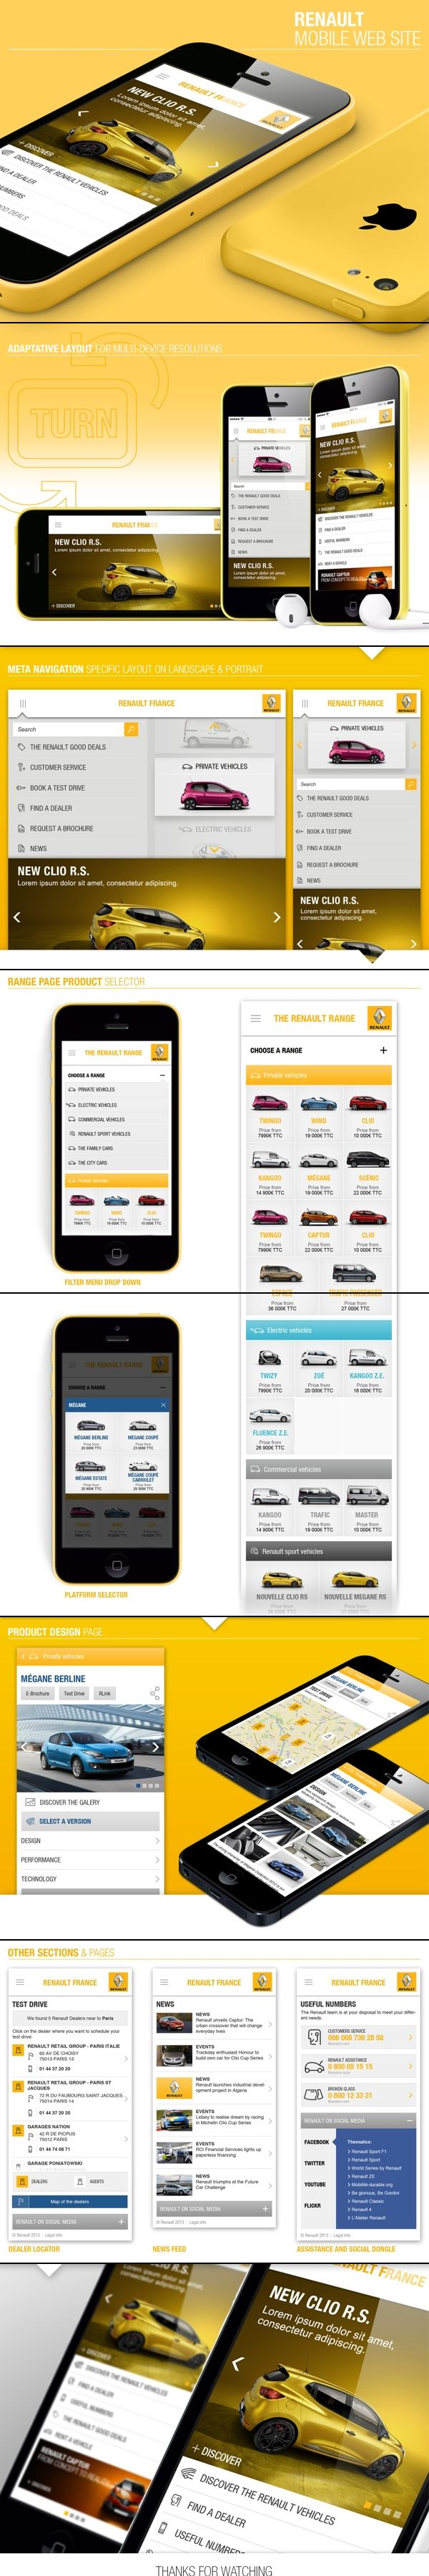 Renault Mobile Site